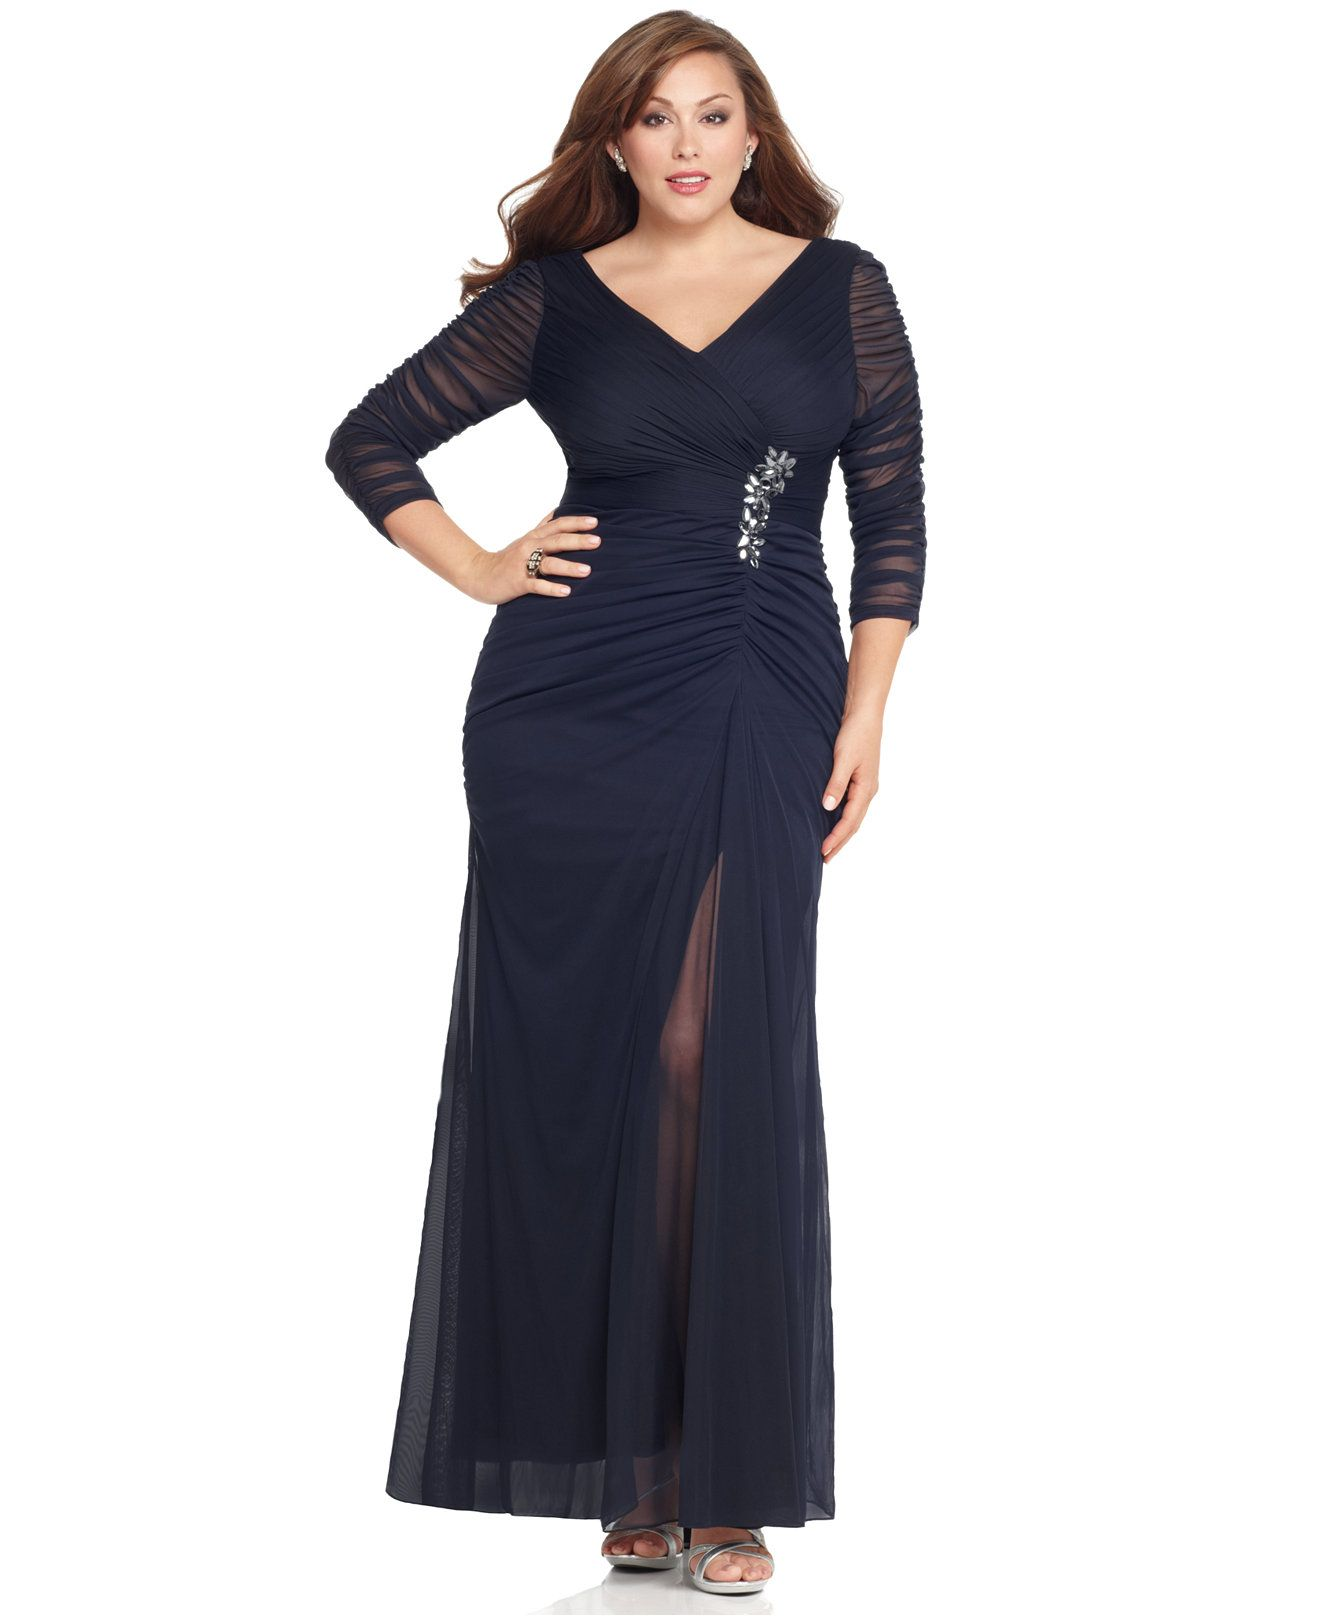 Papell cap sleeve beaded sequined gown dresses women macy s - Adrianna Papell Plus Size Three Quarter Sleeve Ruched Gown Mother Of The Bride